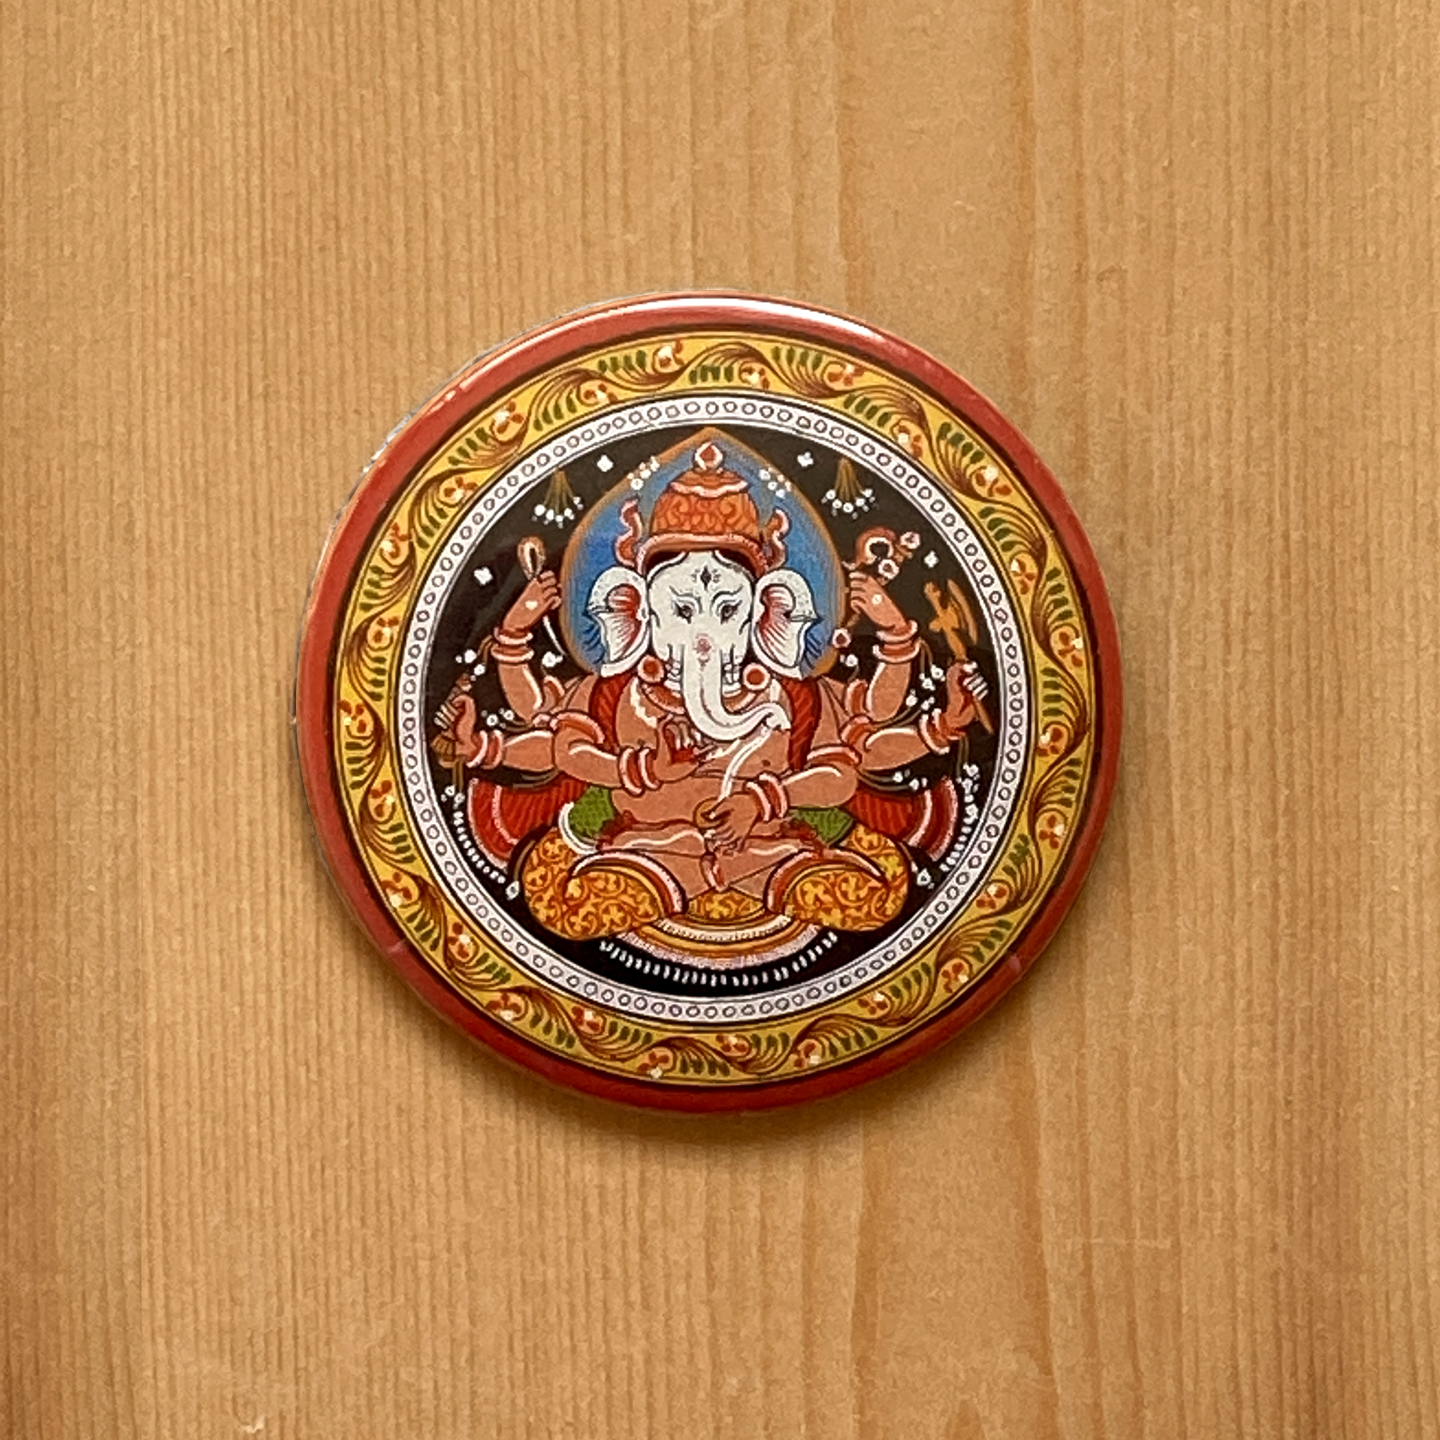 FRIDGE MAGNETS ROUND - Ganesh Patachitra